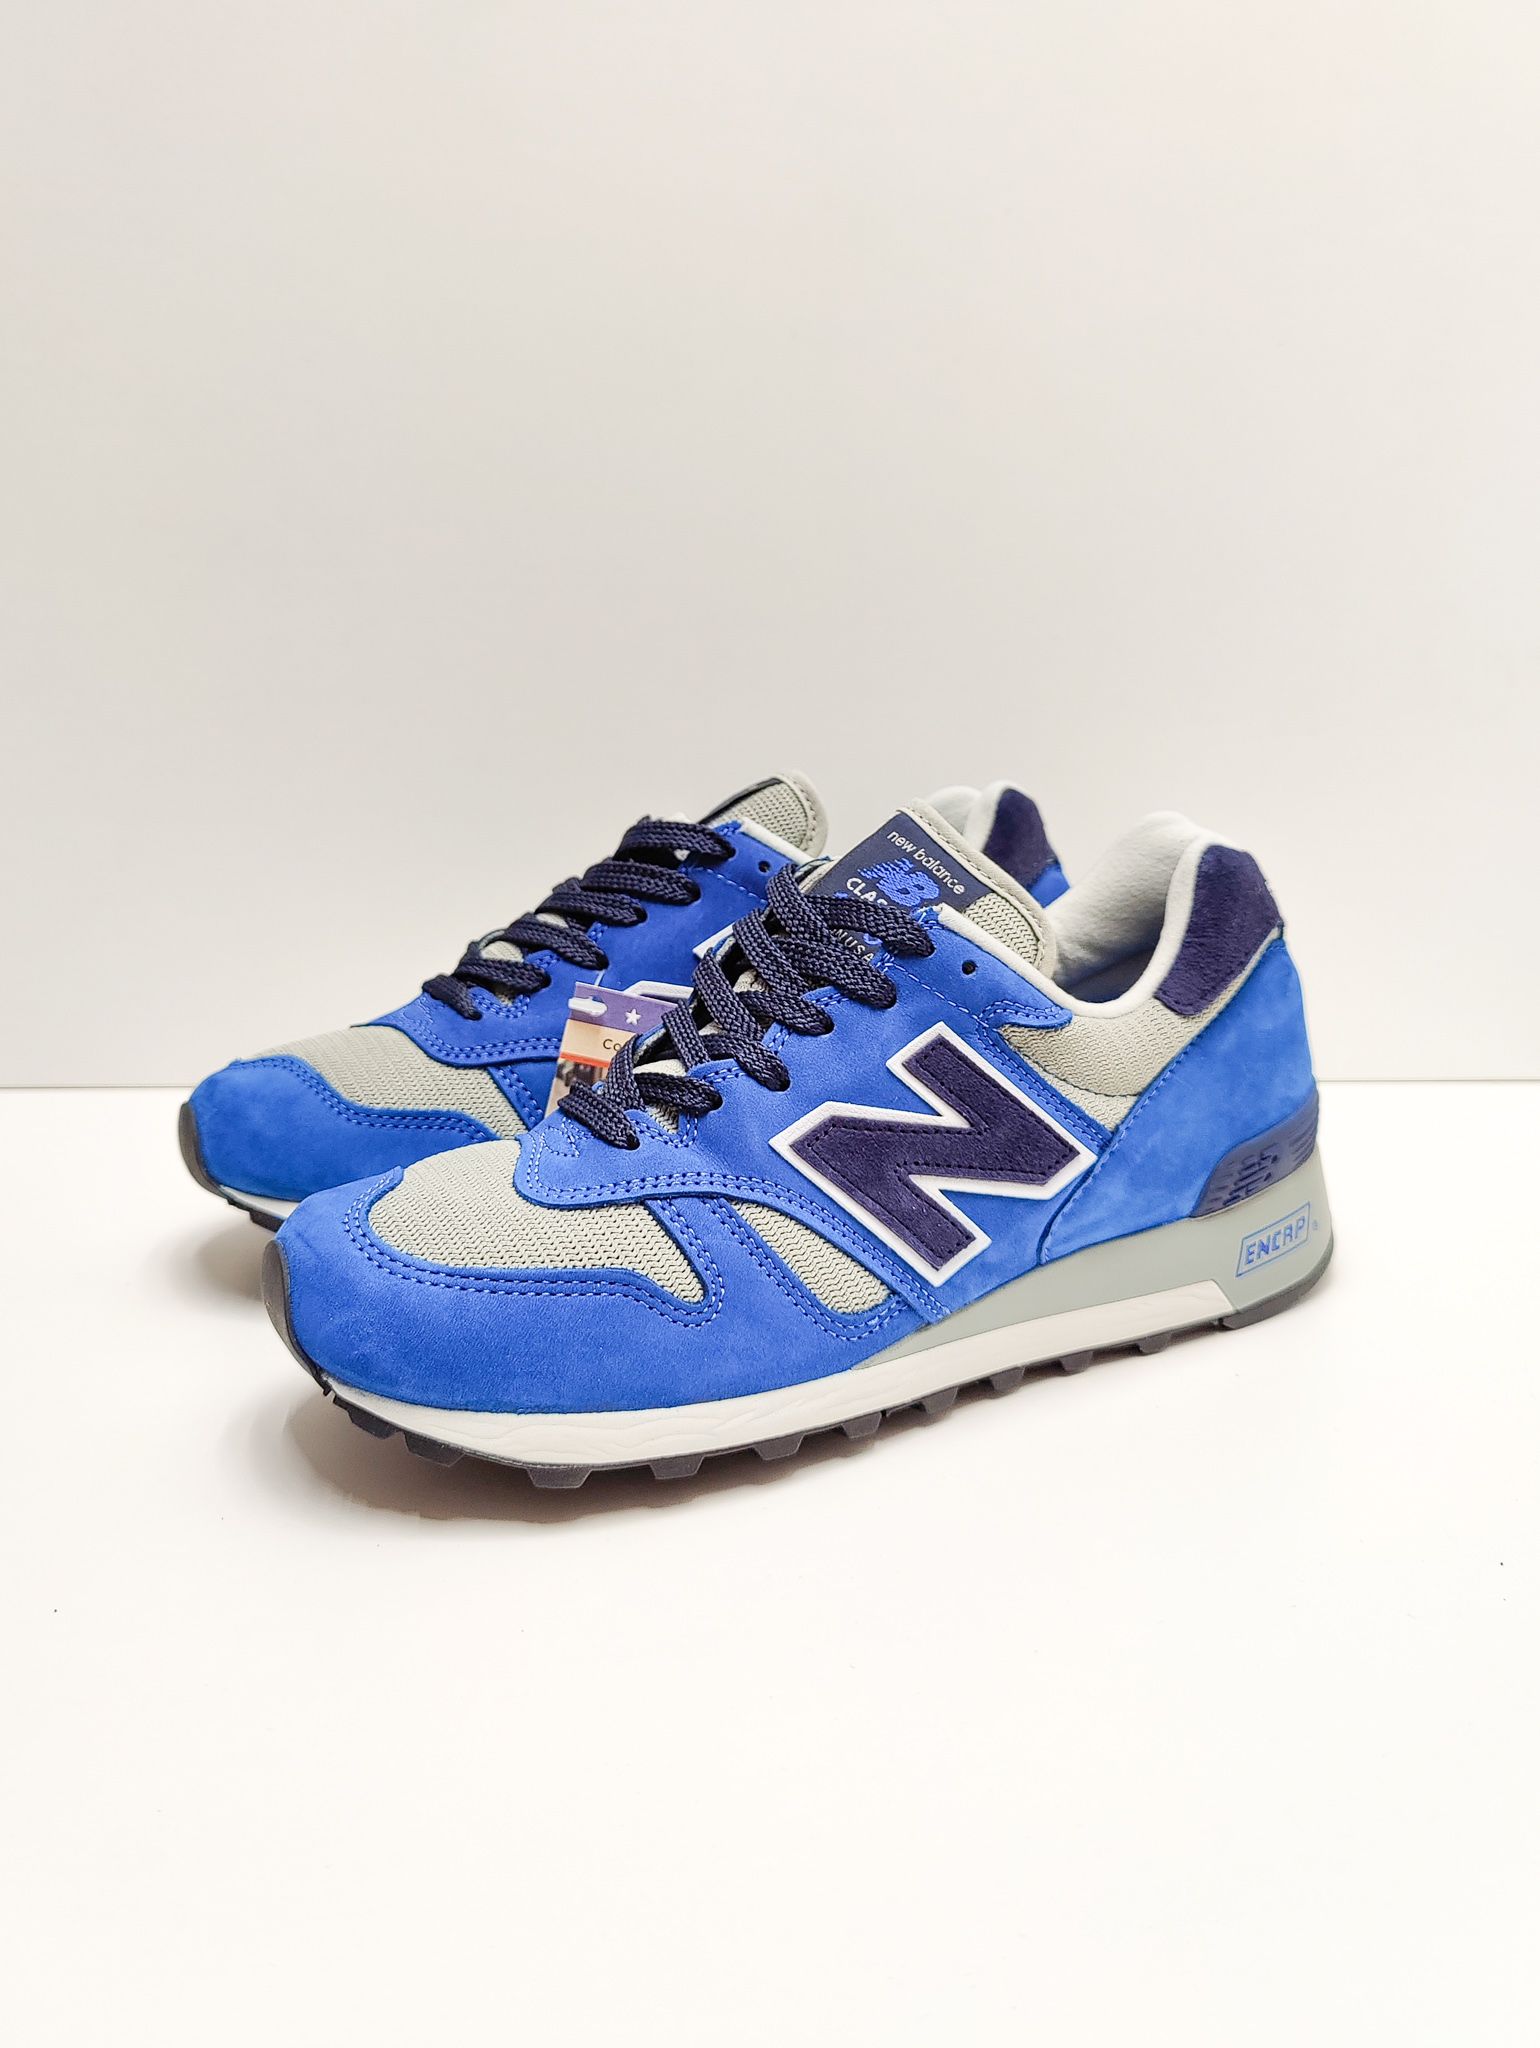 New Balance M1300 American Rebels